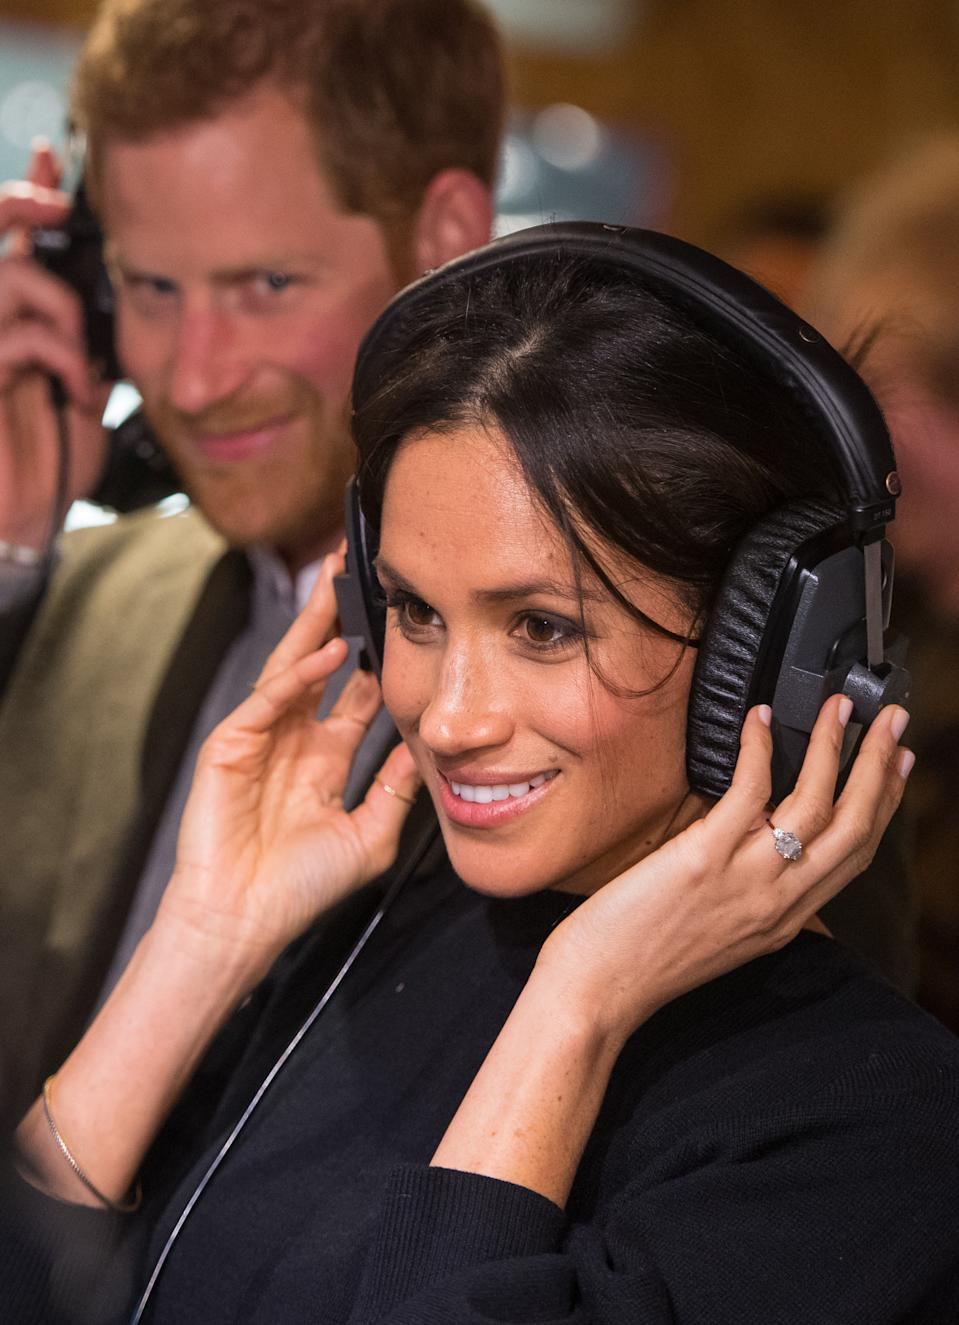 Prince Harry and Meghan Markle during a visit to youth-orientated radio station, Reprezent FM, in Brixton,